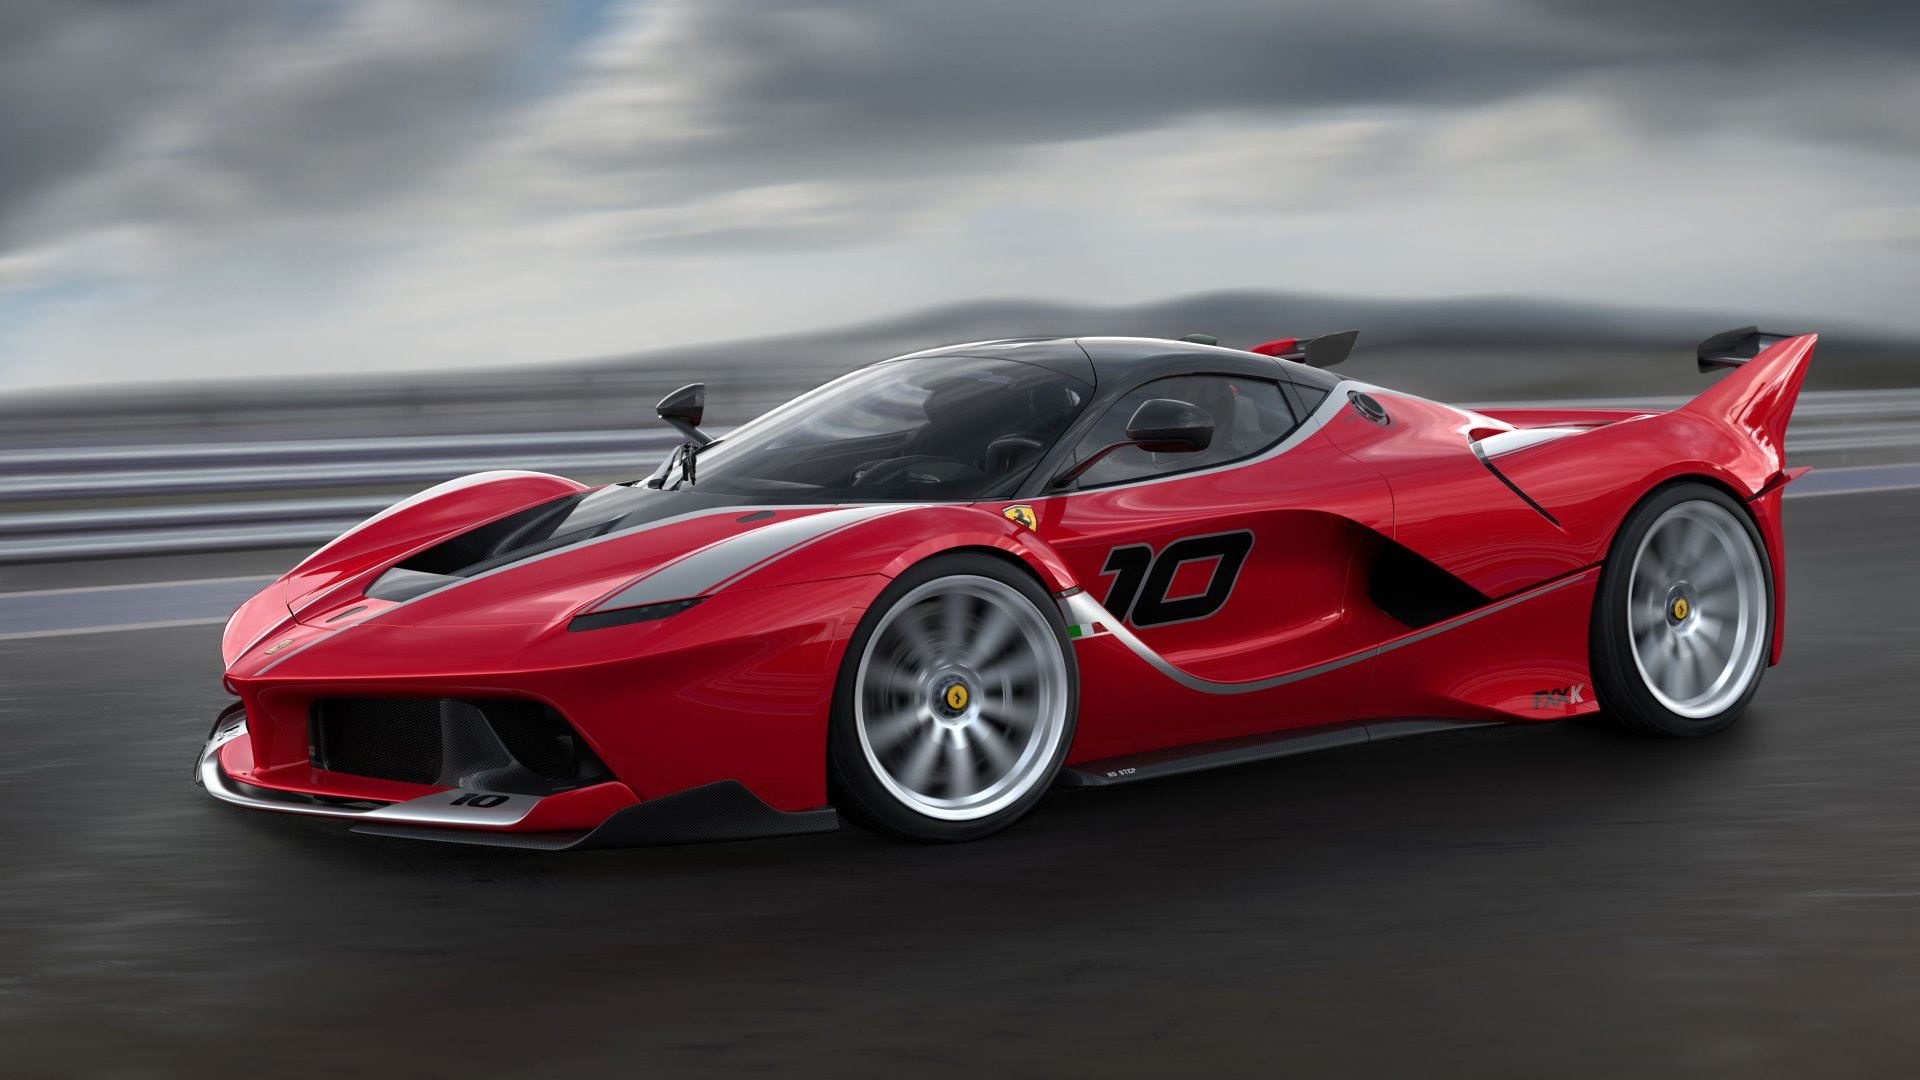 16 4k Ultra Hd Ferrari Fxx K Wallpapers Background Images Wallpaper Abyss